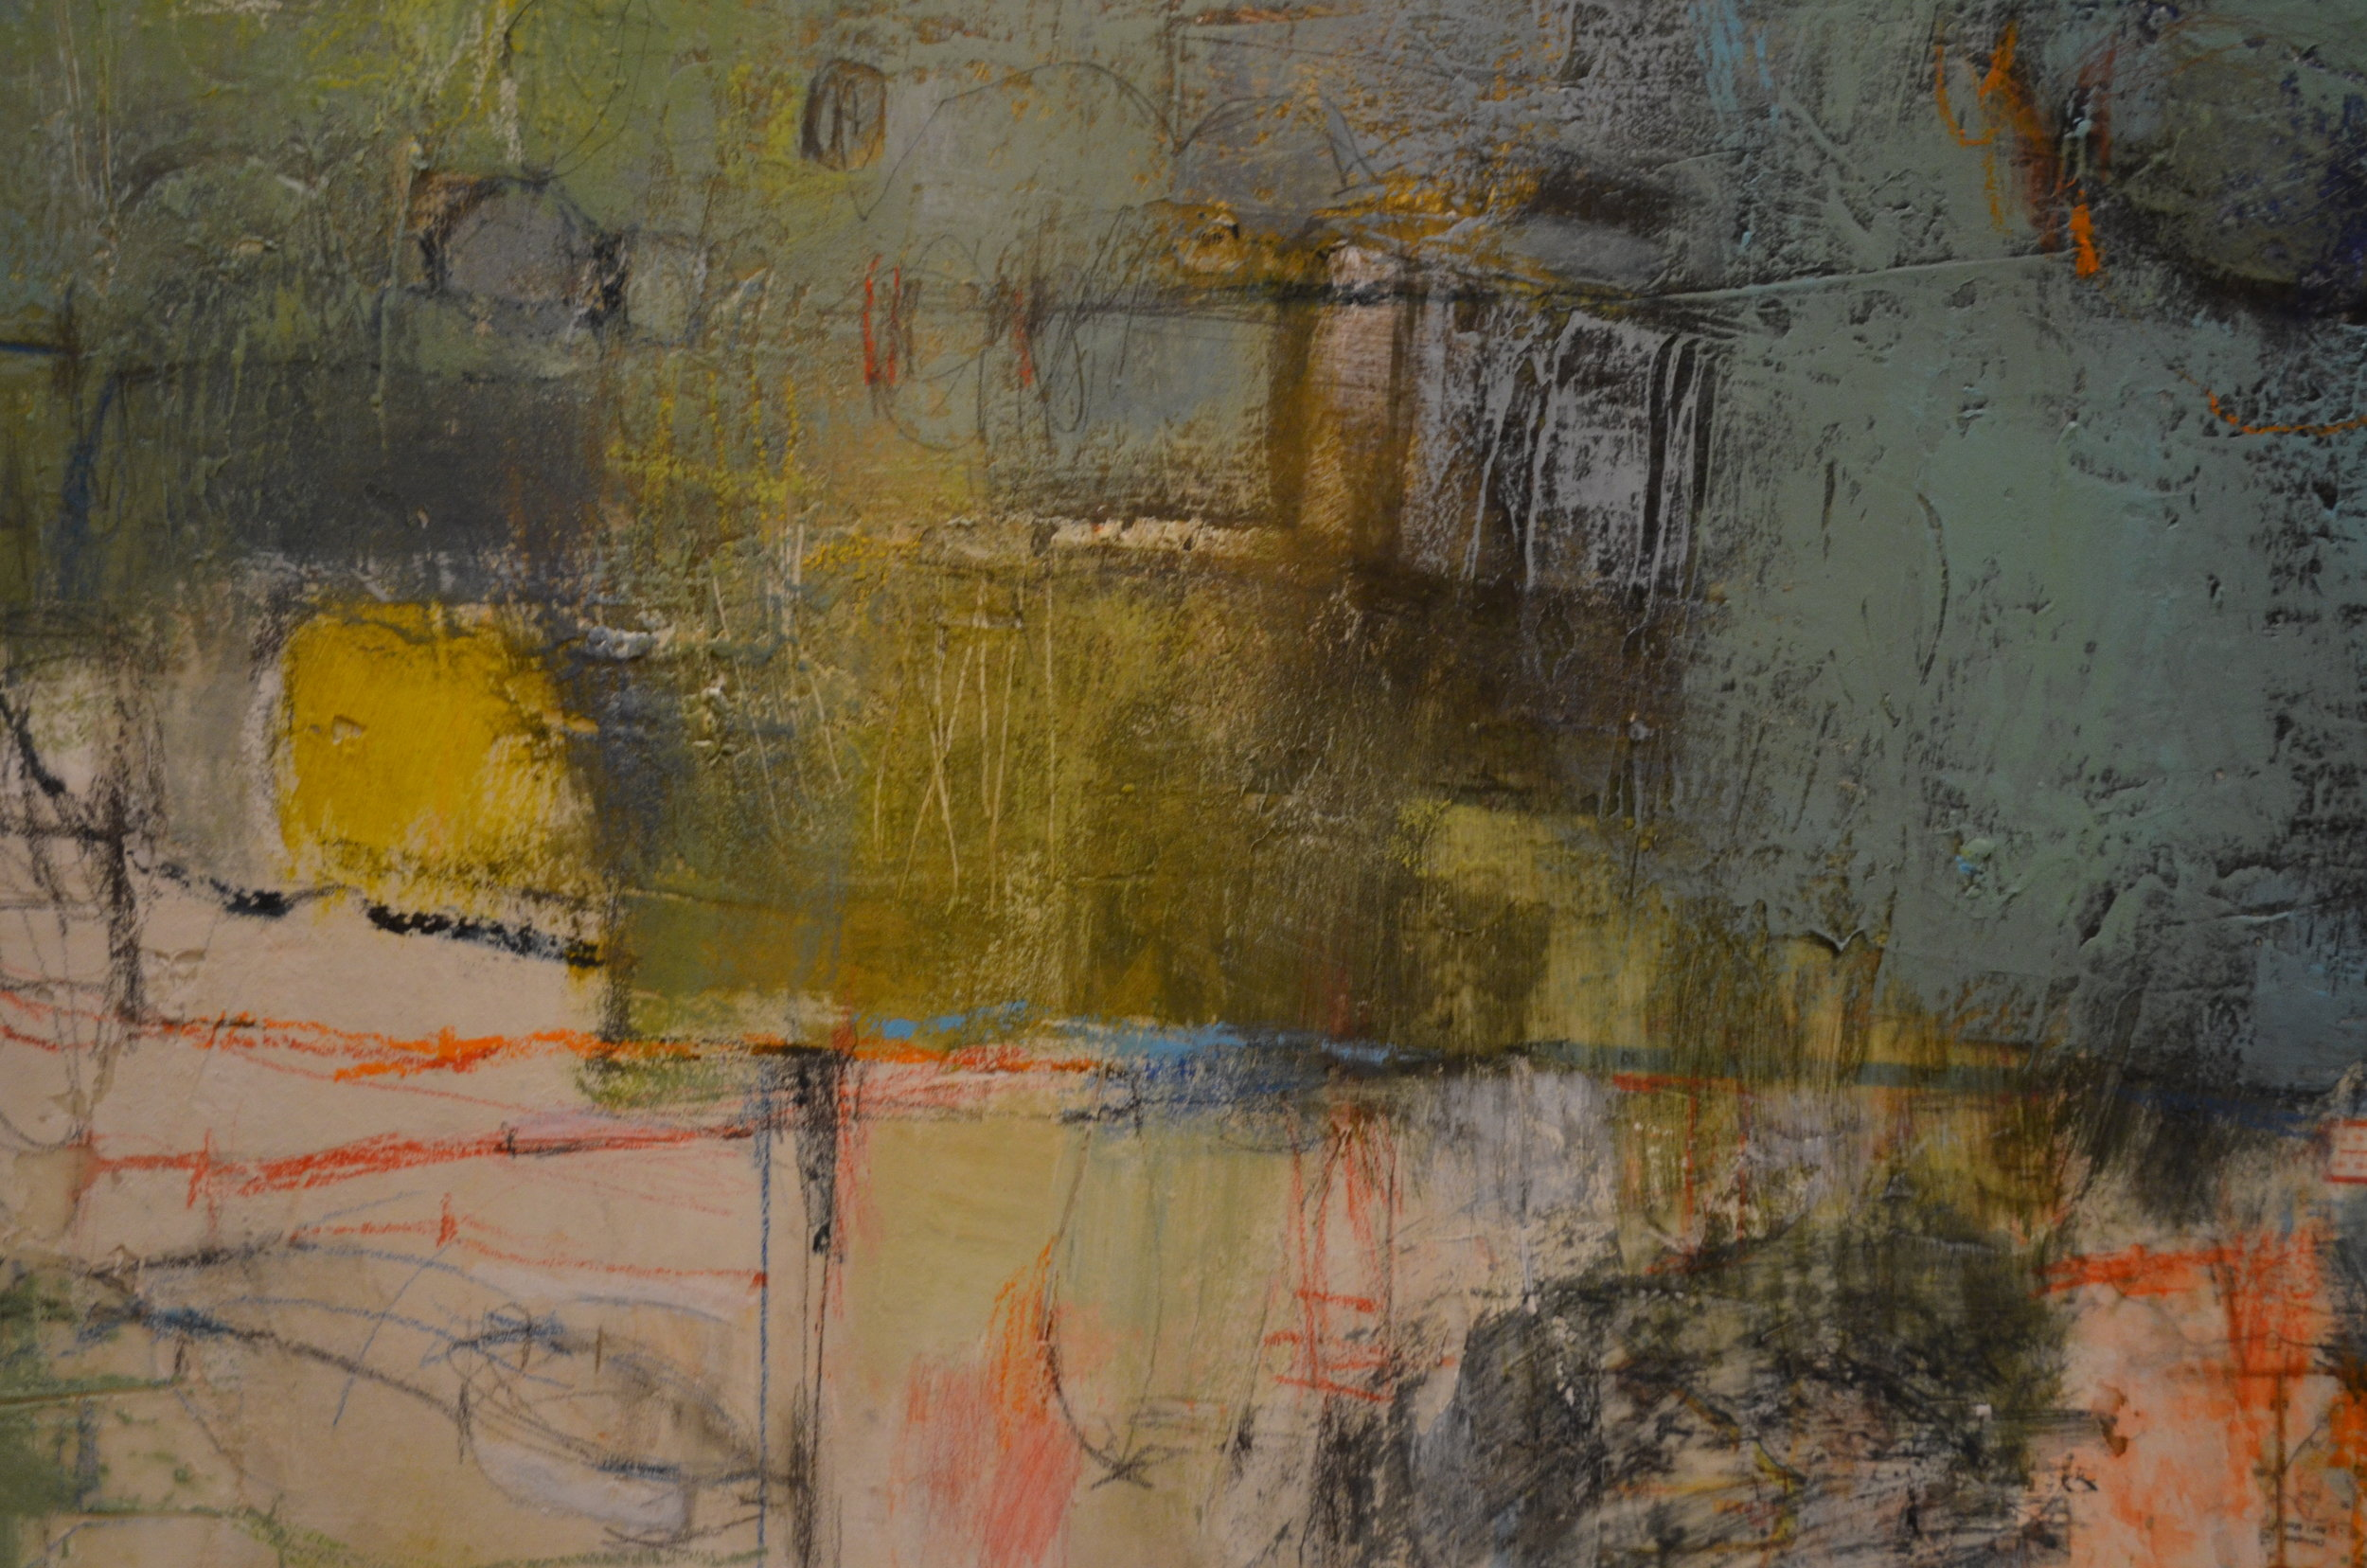 mixed media on canvas by tamar kander, edge of spring, texture close up images